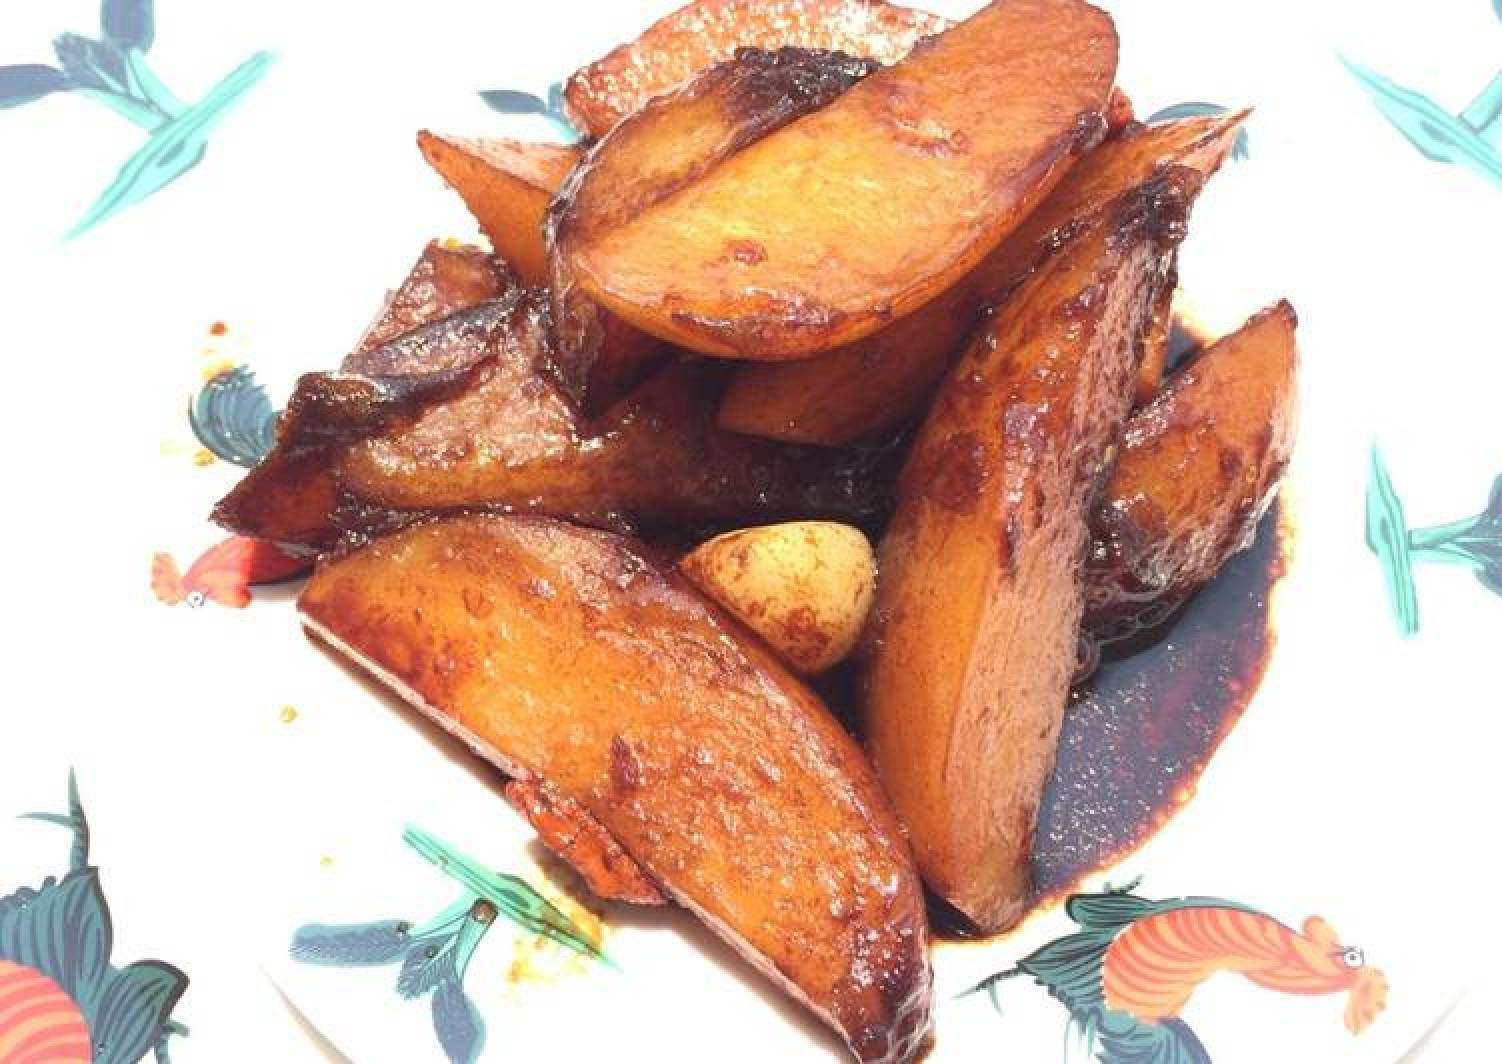 Potato And Wolfberries In Essence Of Chicken Soy Sauce